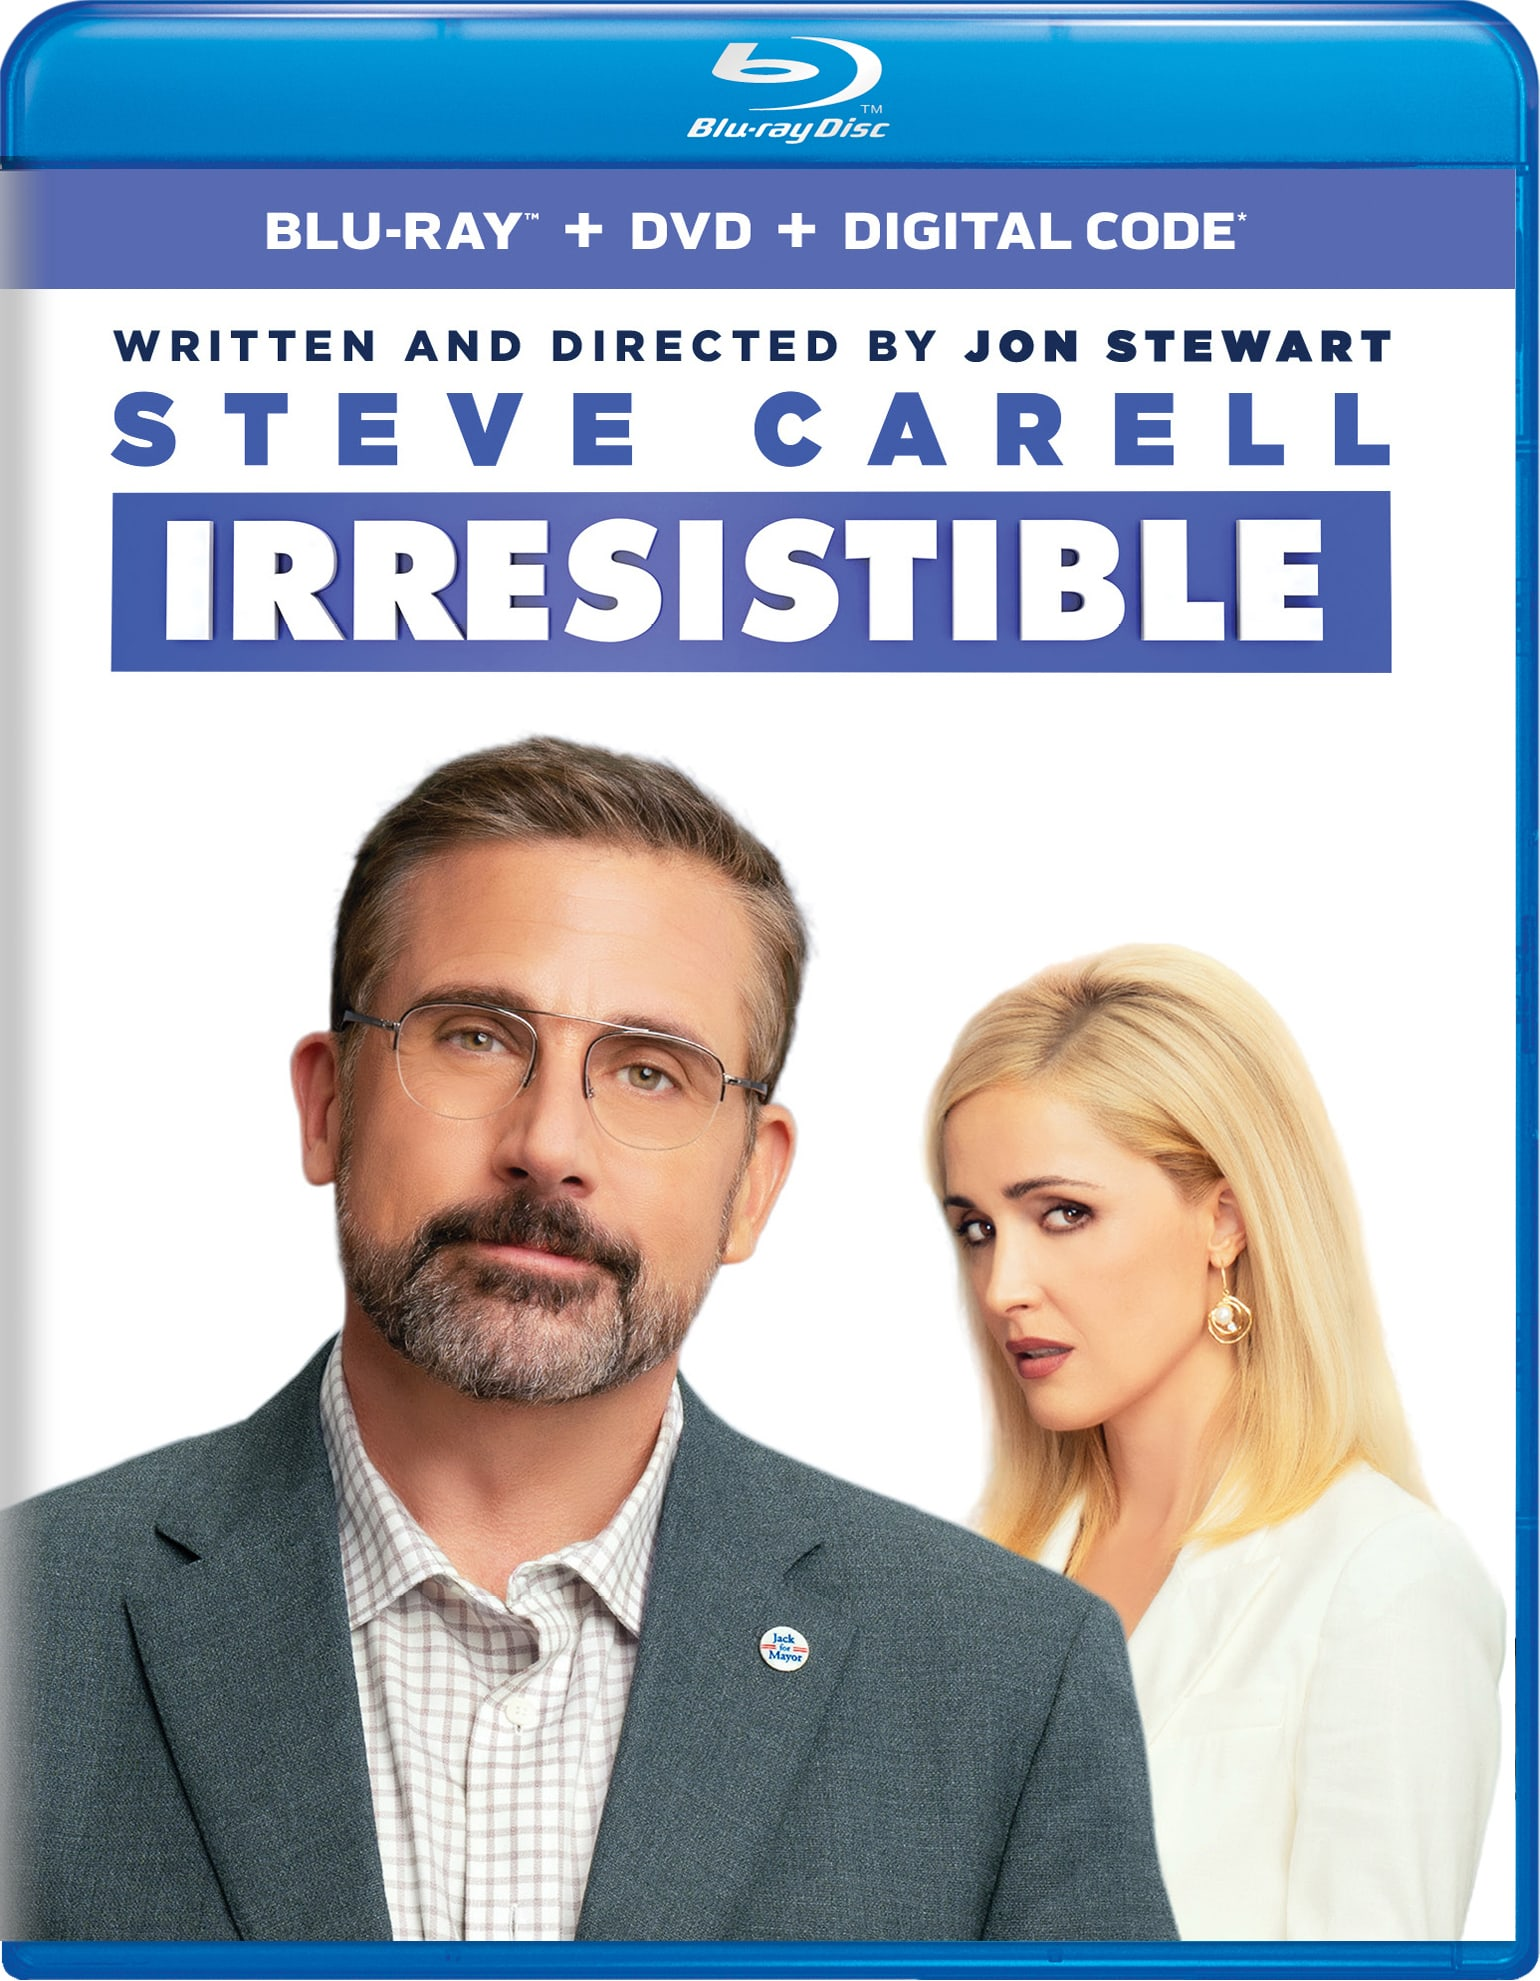 Irresistible (DVD + Digital) [Blu-ray]